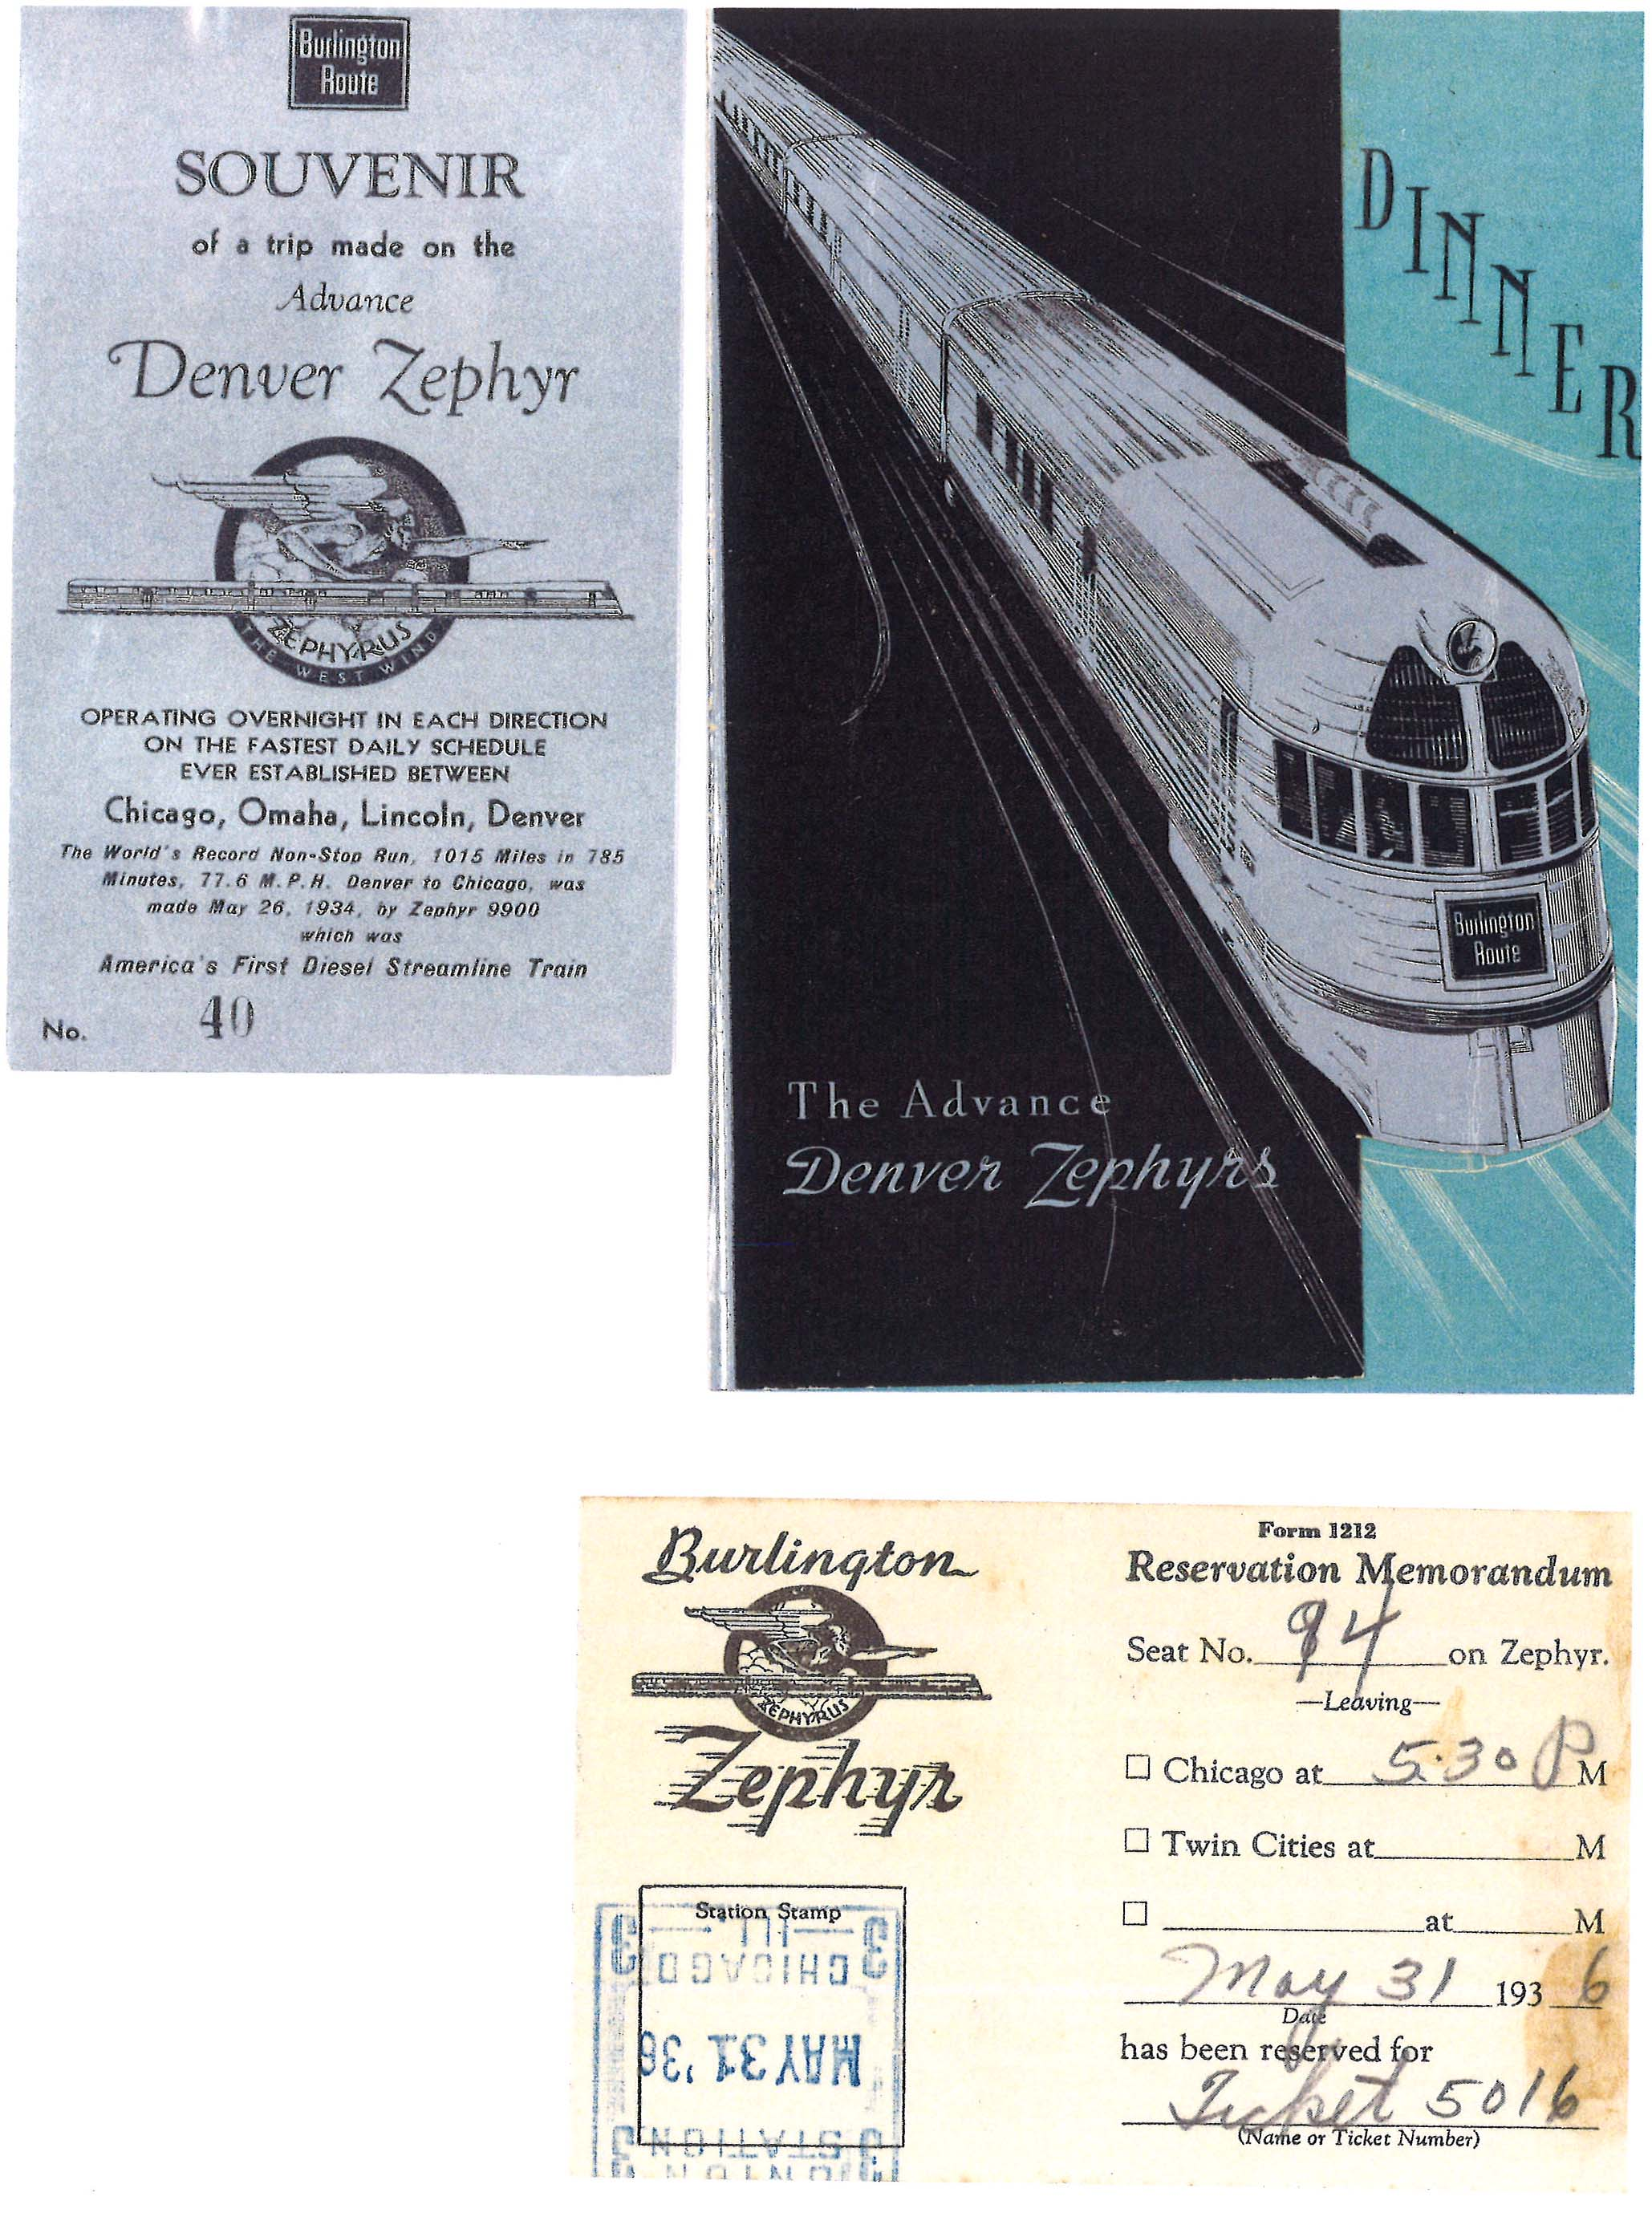 Burlington+Denver+Zephyr+Dinner+Menu+5-36 1.jpg